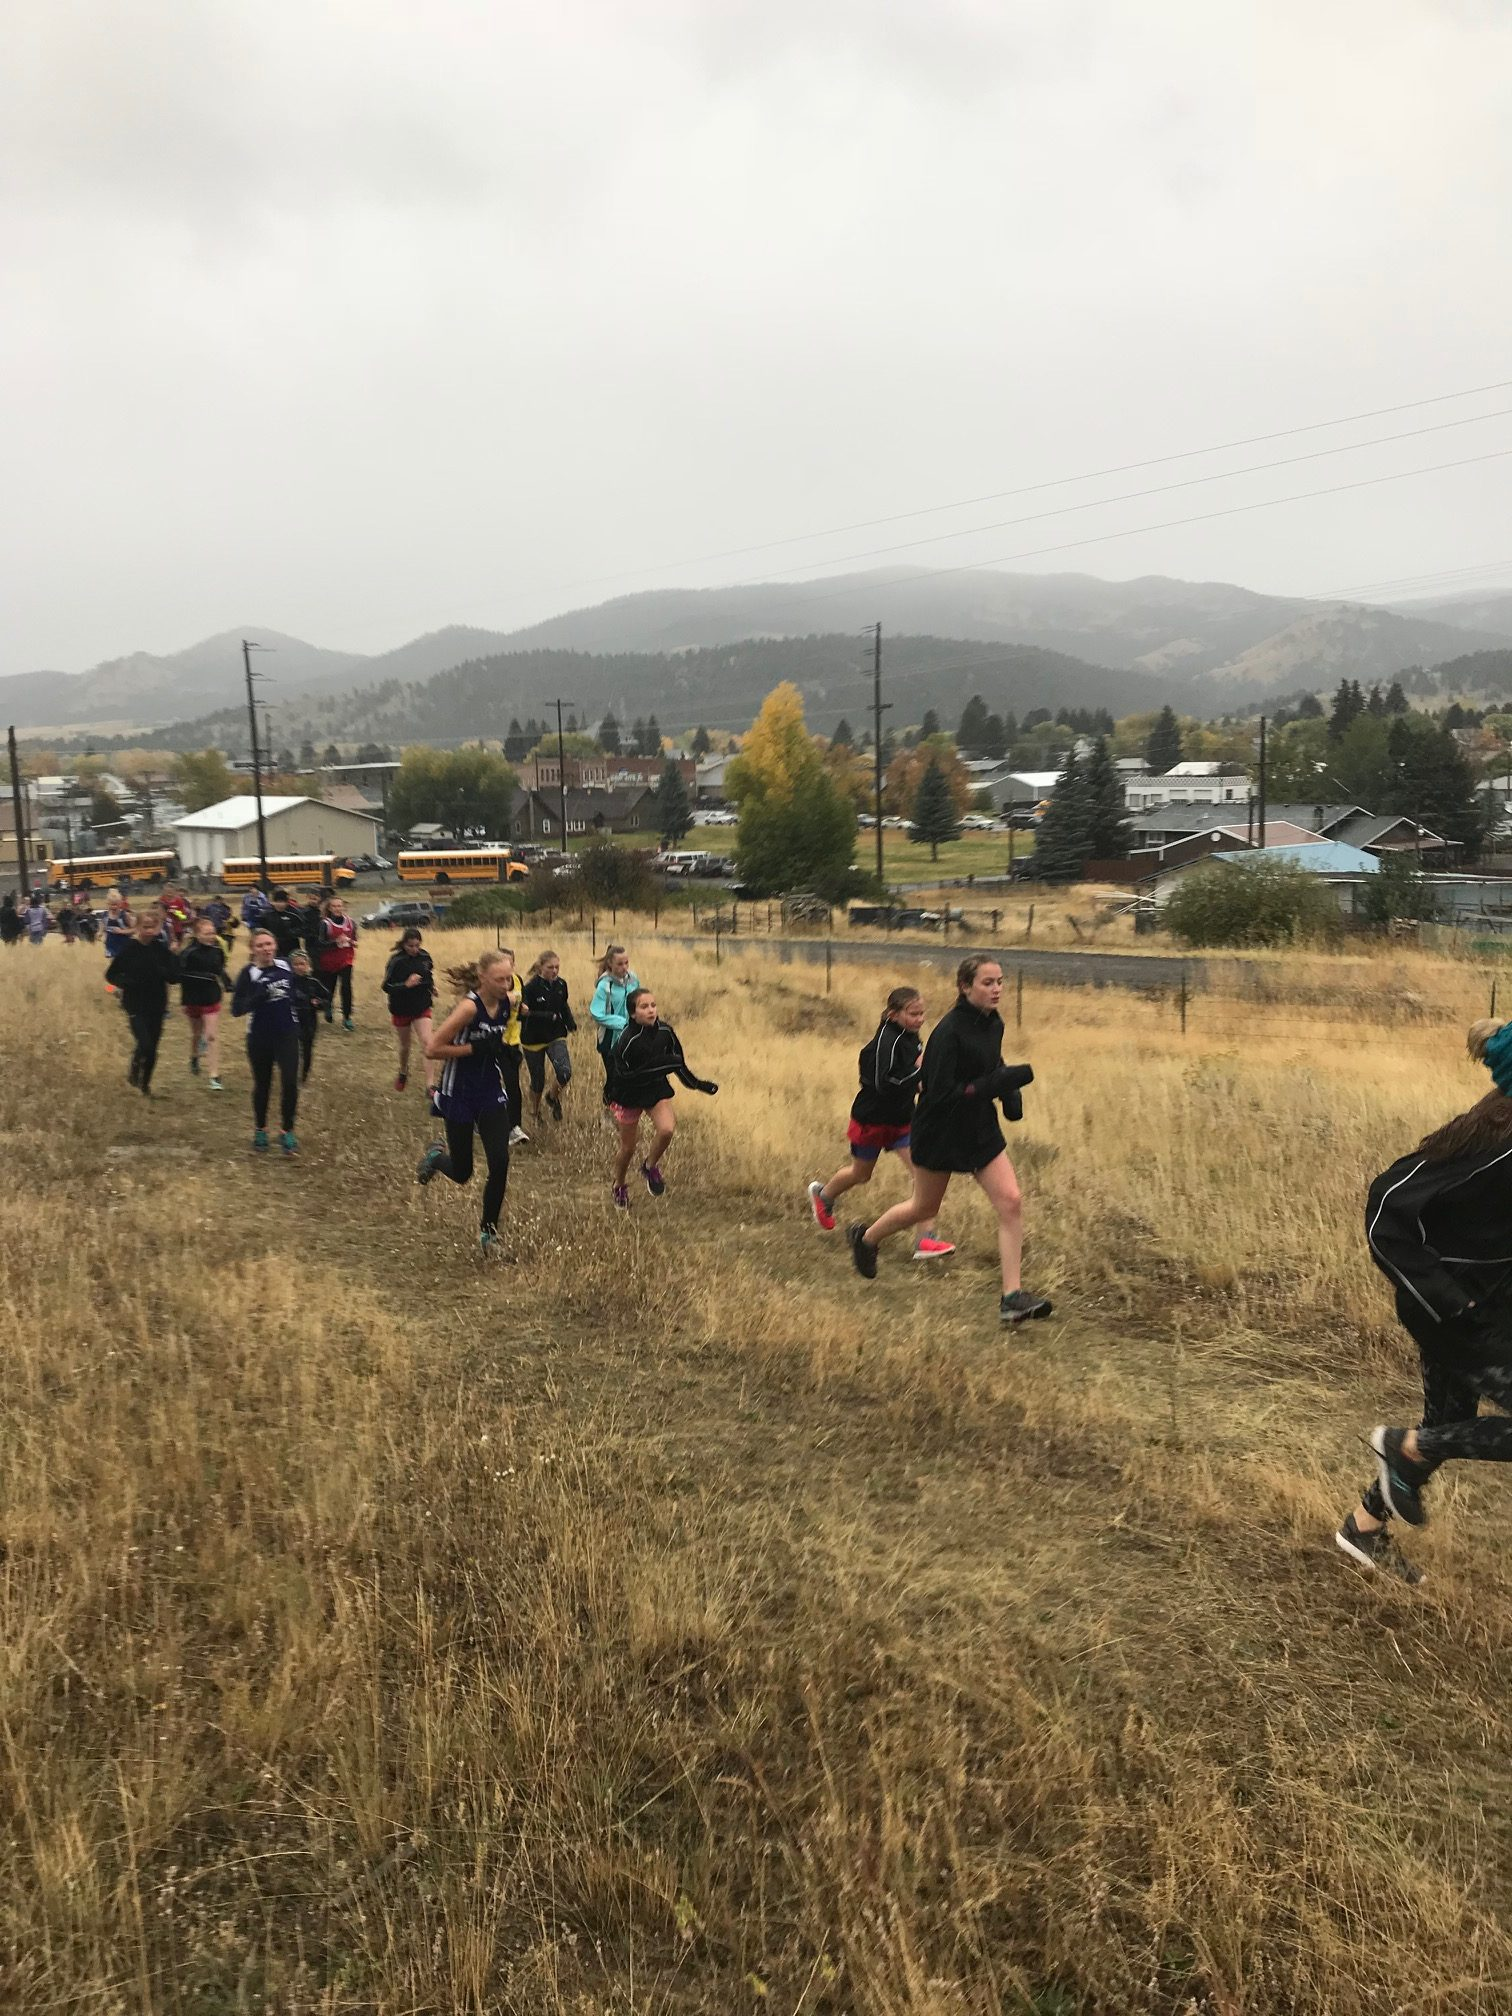 Providing race course assistance at daughter's cross country meet Brrr October running in Montana